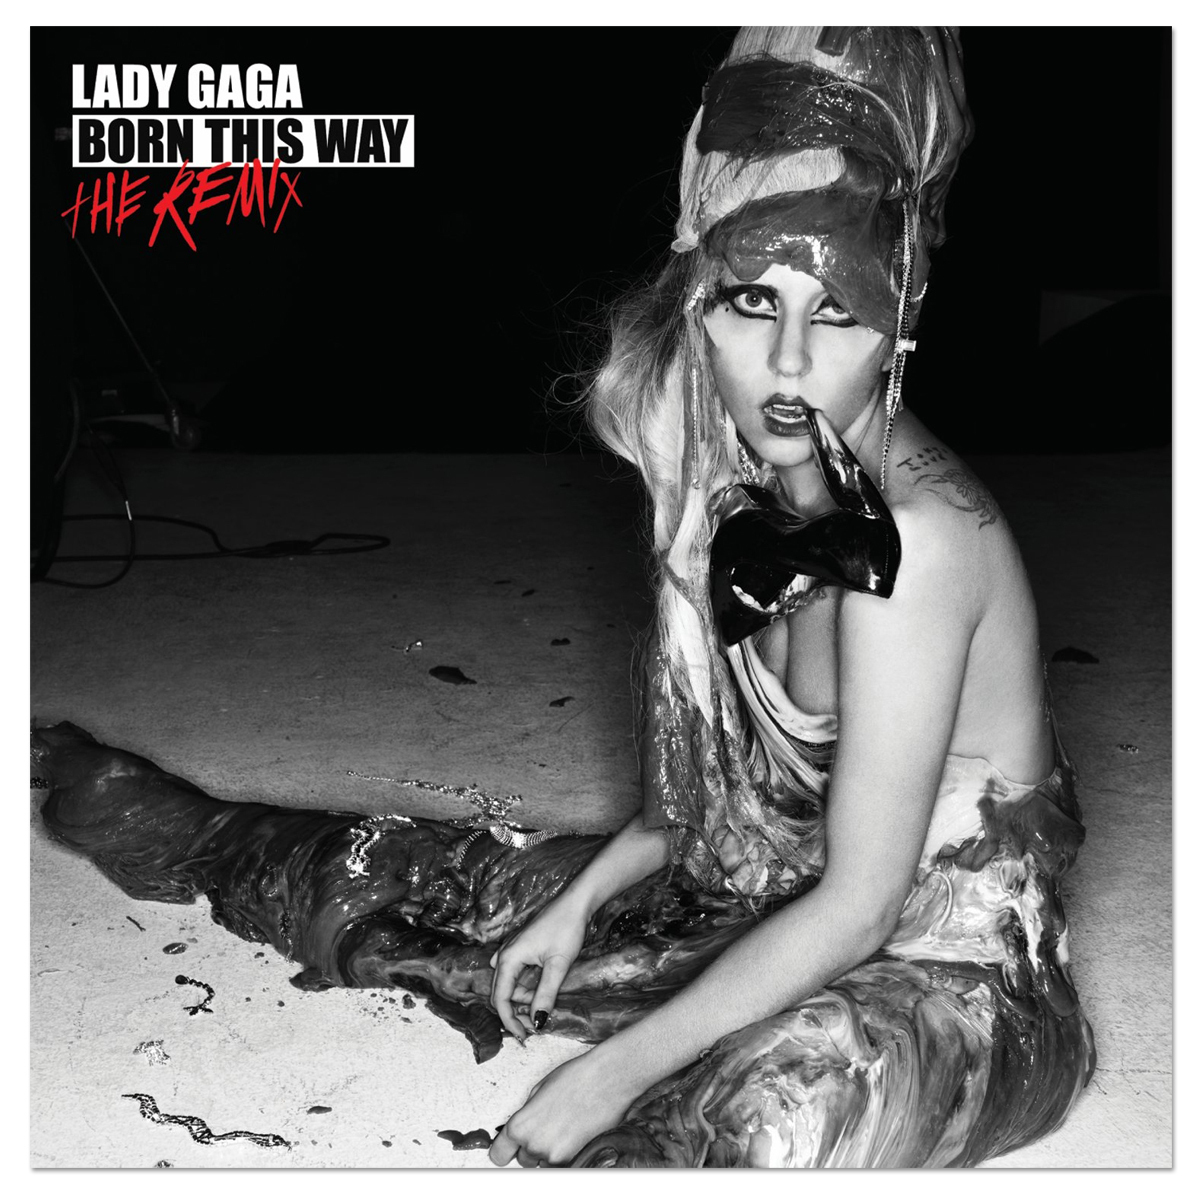 Lady Gaga - Born This Way - The Remix CD